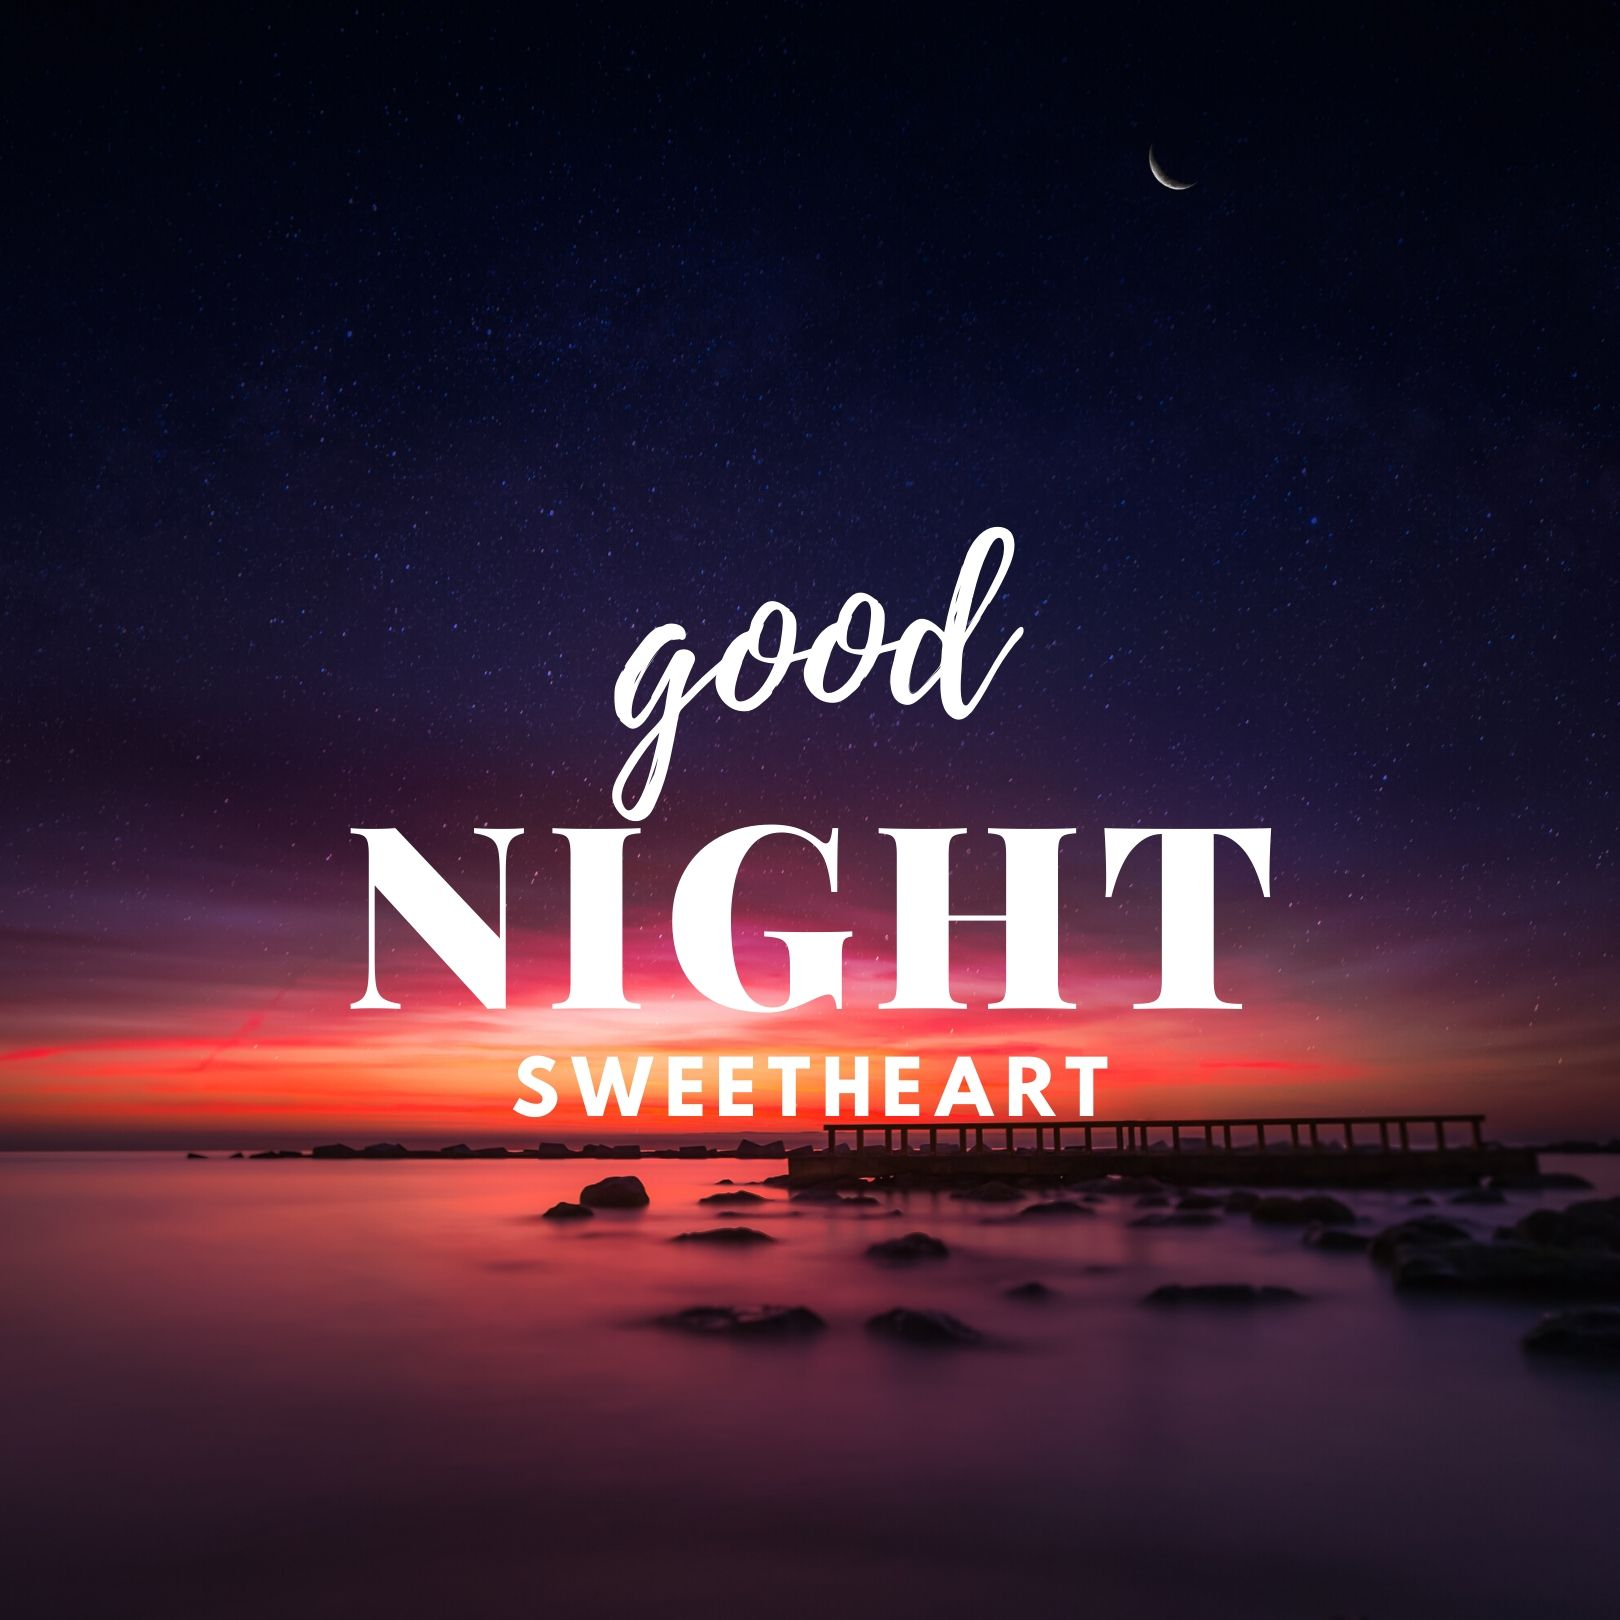 Good Night Sweetheart images full HD free download.